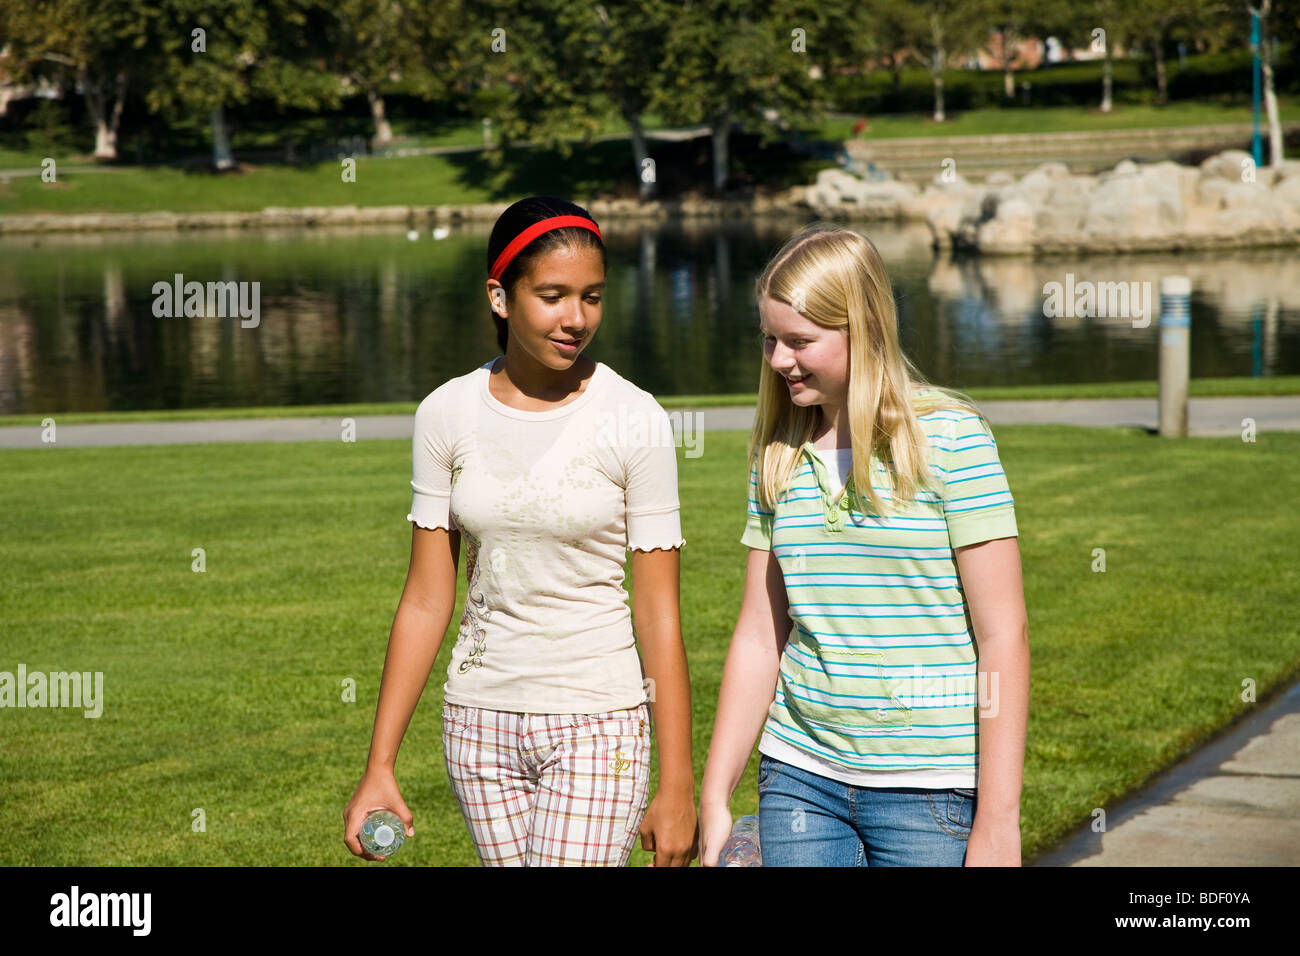 Two girls hang hanging out together. Hispanic and Caucasian junior high girls walking in the park. MR - Stock Image